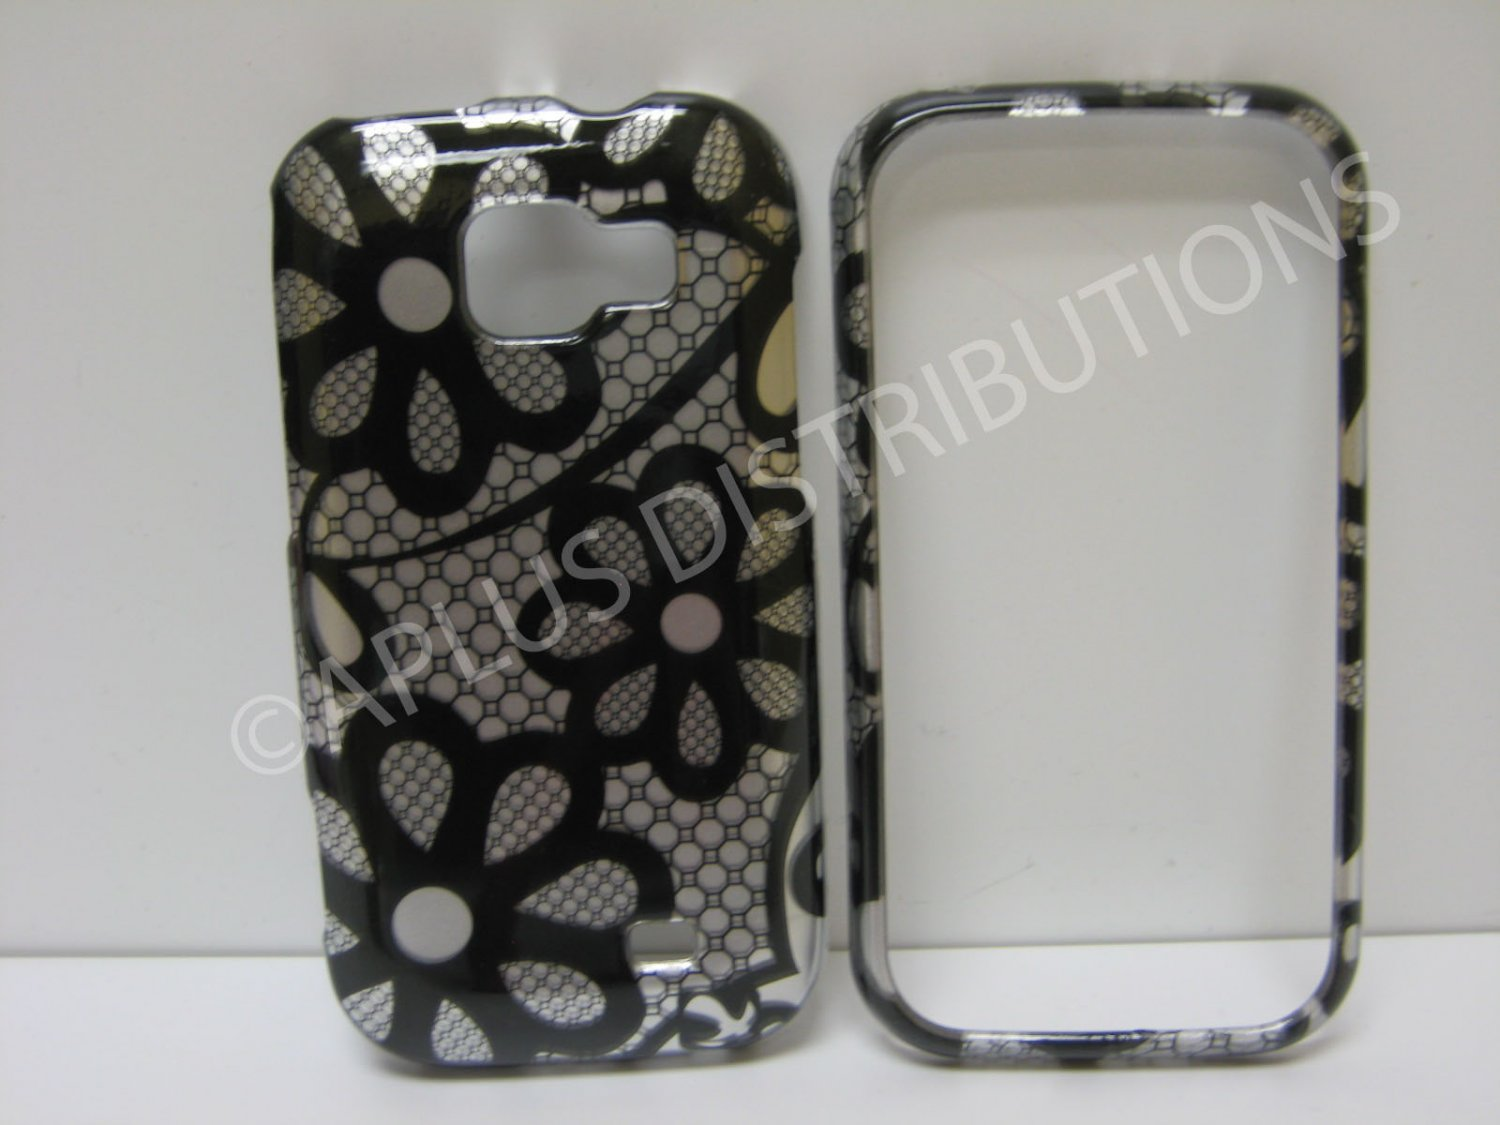 New Black Tri-Dasies Series Hard Protective Cover For Samsung Transform M920 - (0039)